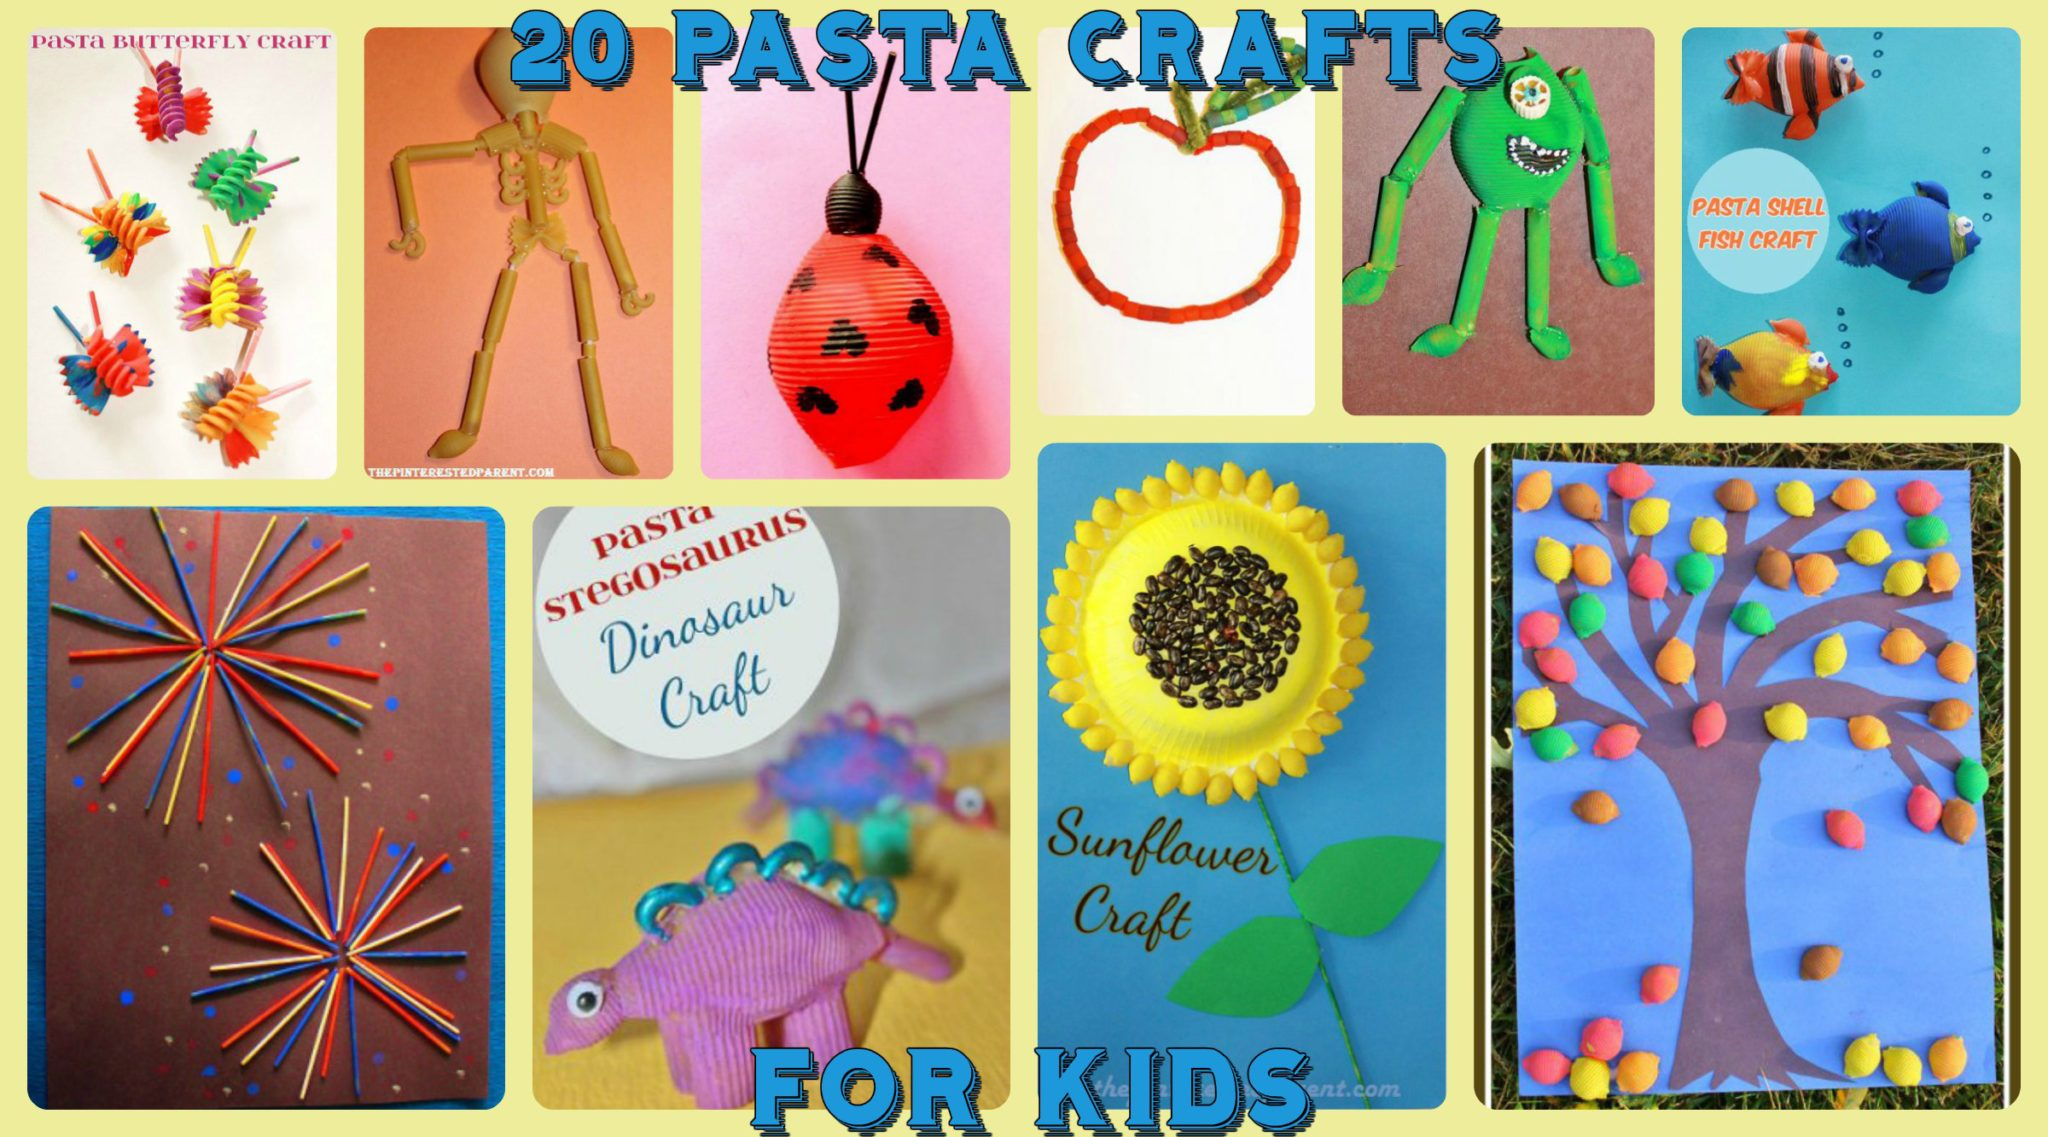 pasta crafts archives u2013 the pinterested parent